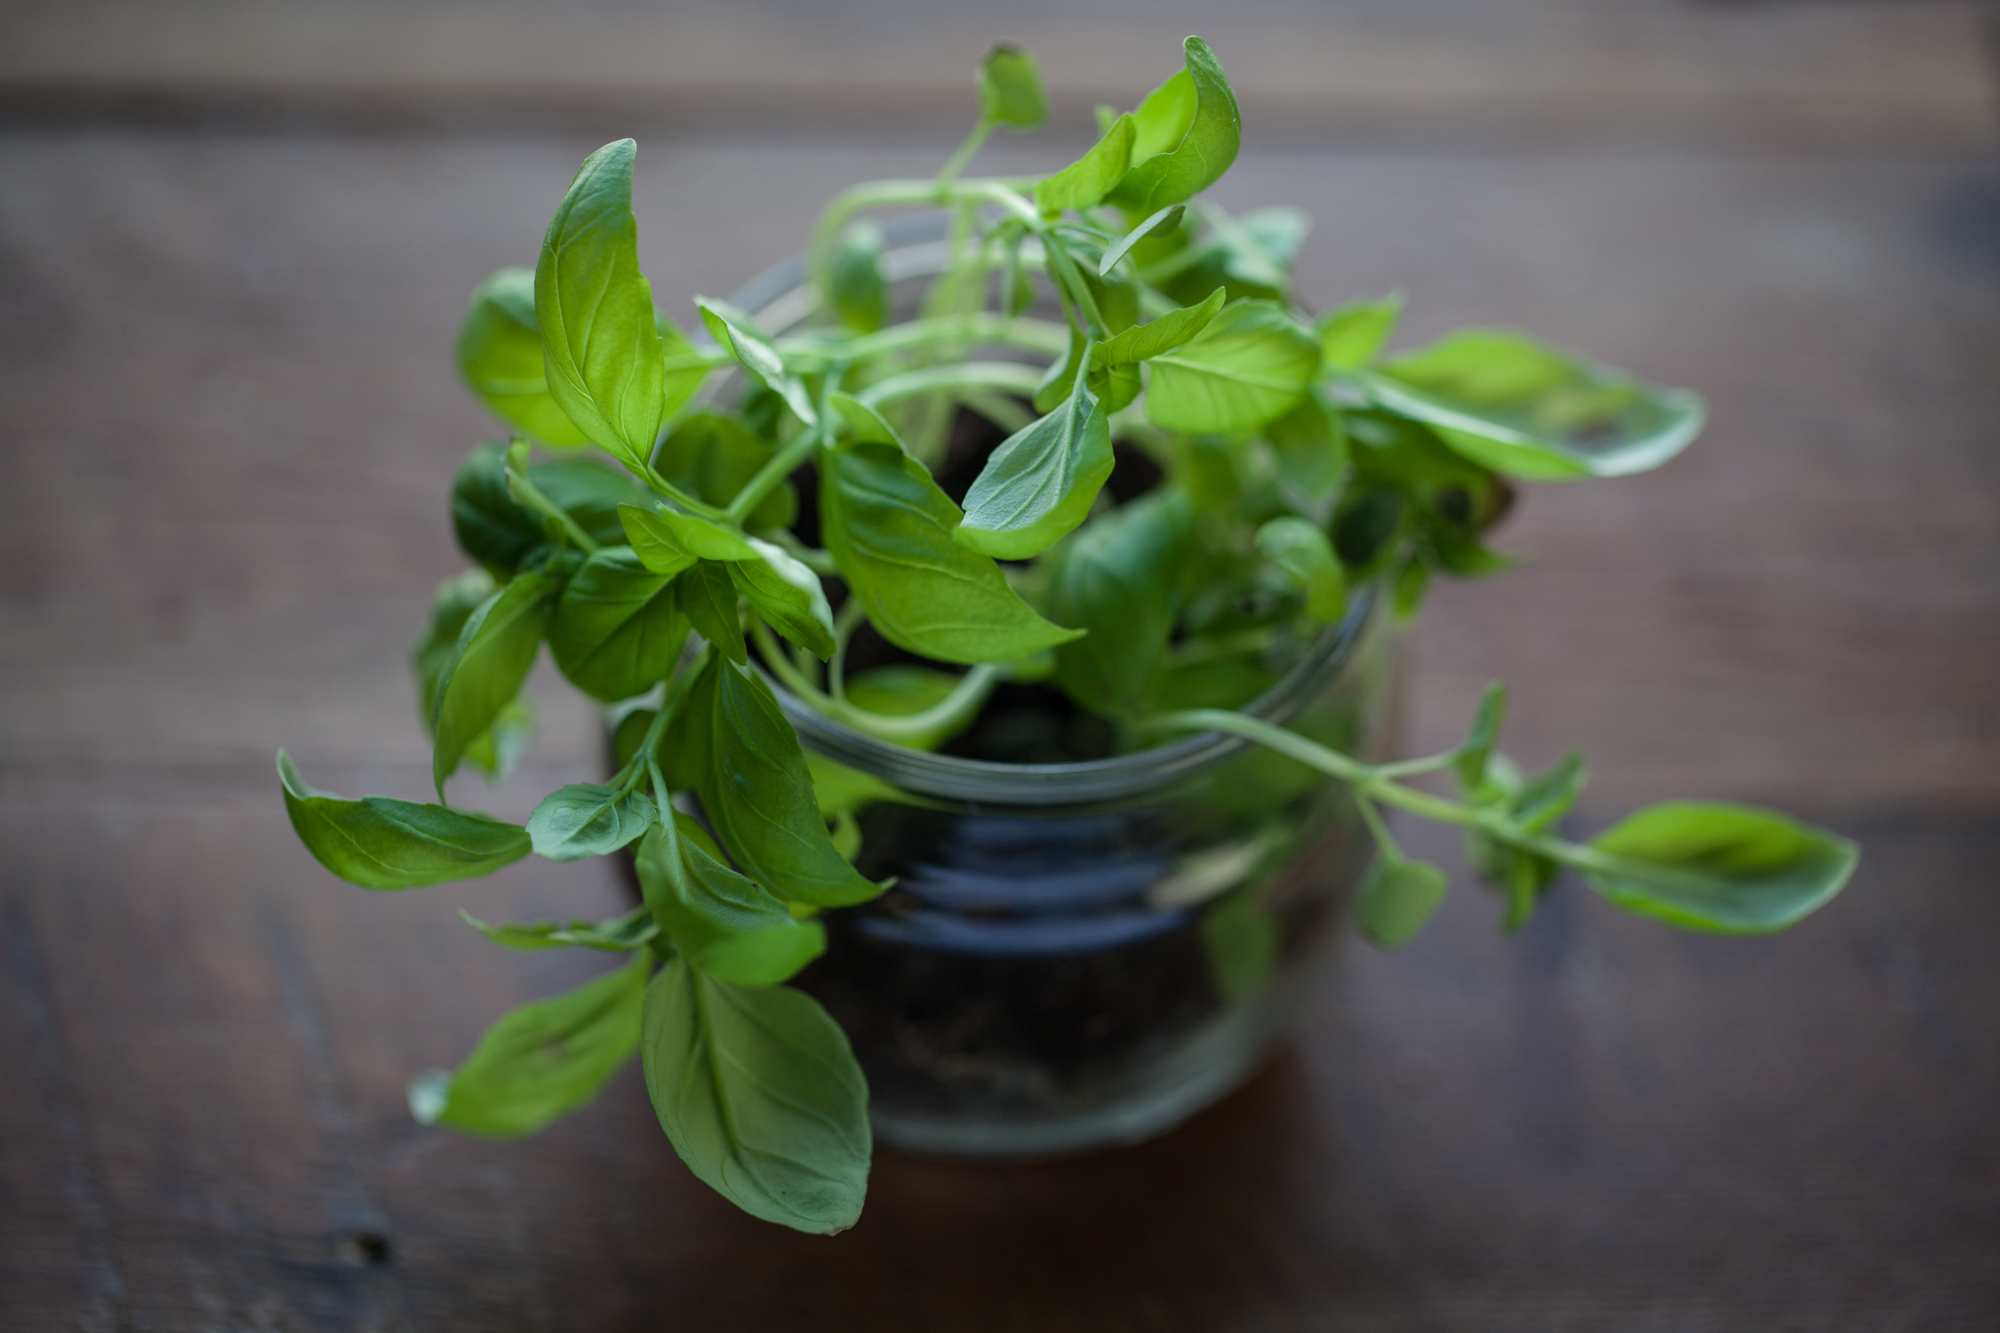 Microgreen basil growing in an upcycled yogurt container.